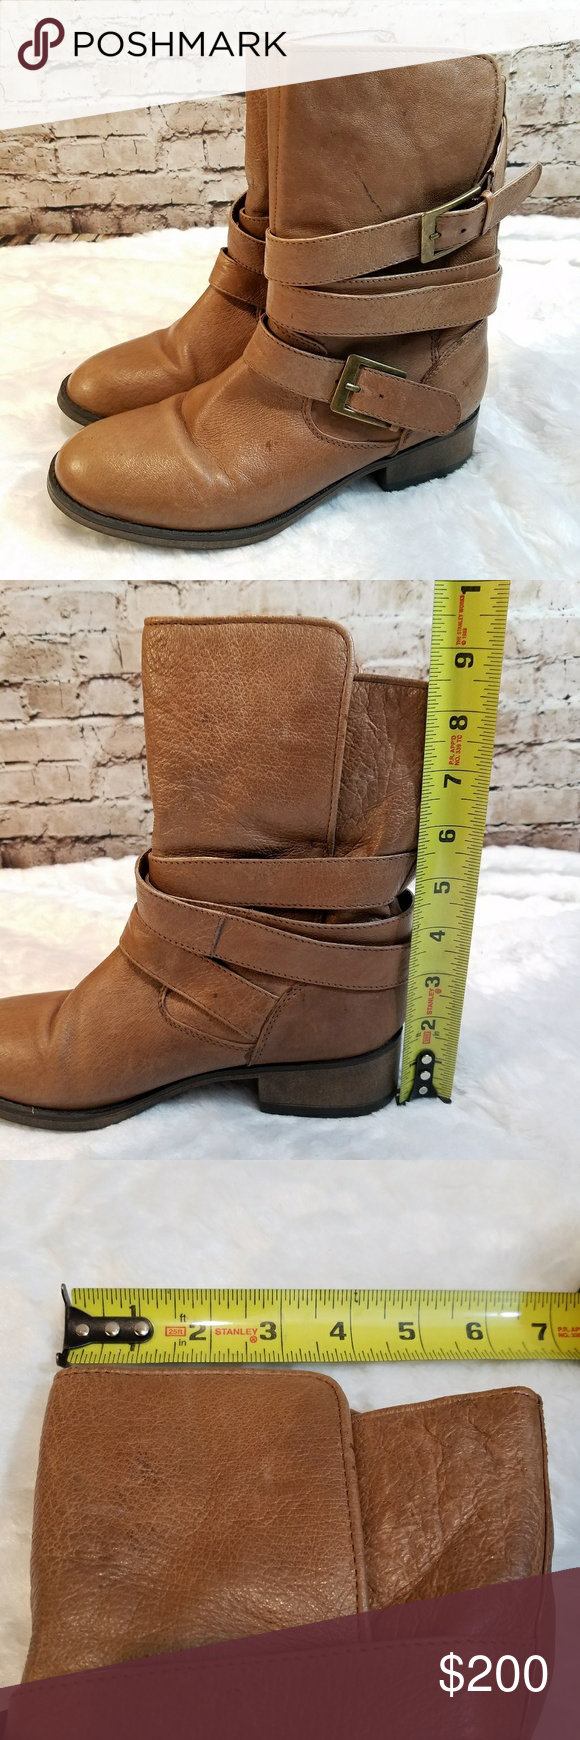 """Steve Madden Elle Boots Steve Madden brand Elle style name In very good condition  Size 8 1.5"""" heel Approx 9"""" shaft height Approx 6.5"""" leg opening laid flat Leather uppers, fabric lined inside There are a few marks here and there, they almost seem like they were intentional distressing Some wrinkling at toe Steve Madden Shoes Ankle Boots & Booties"""